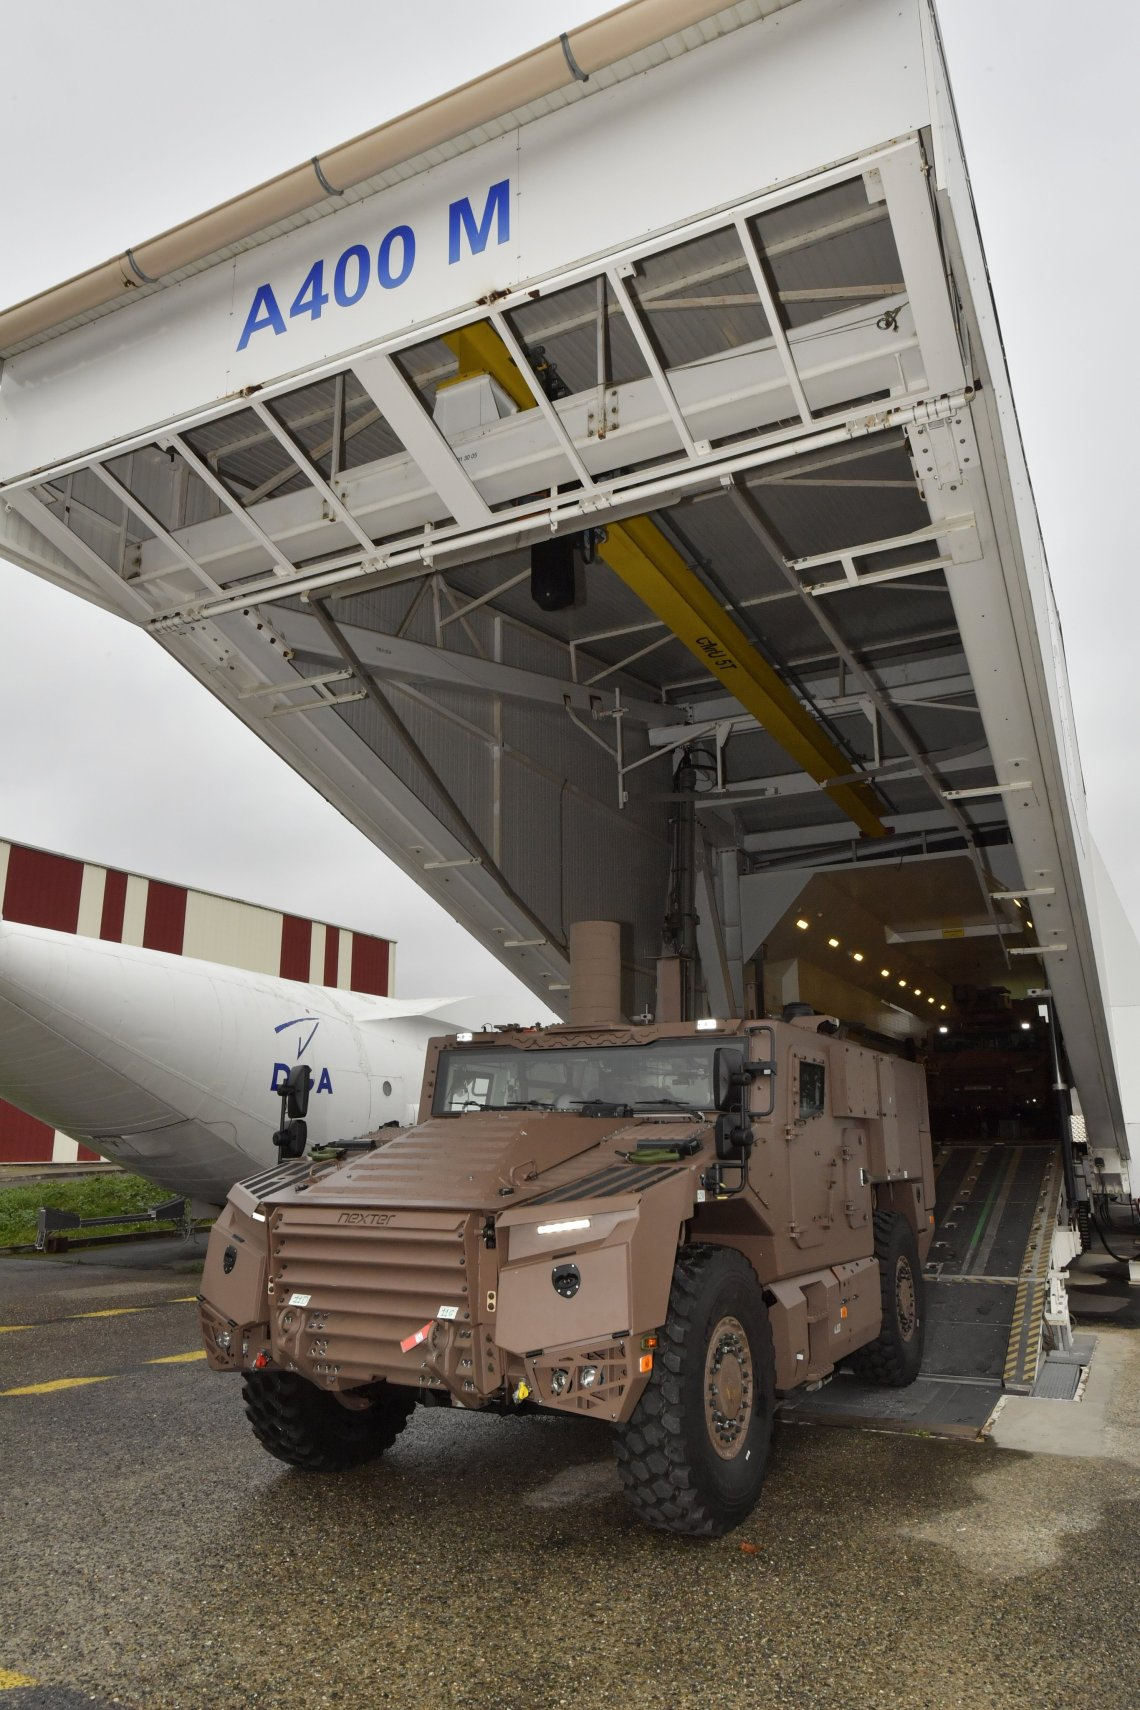 The Frence DGA has conducted the first loading on A400 military transport aircraft with the French Army new VBMR Leger Serval 4x4 armored vehicle on December 11, 2020.